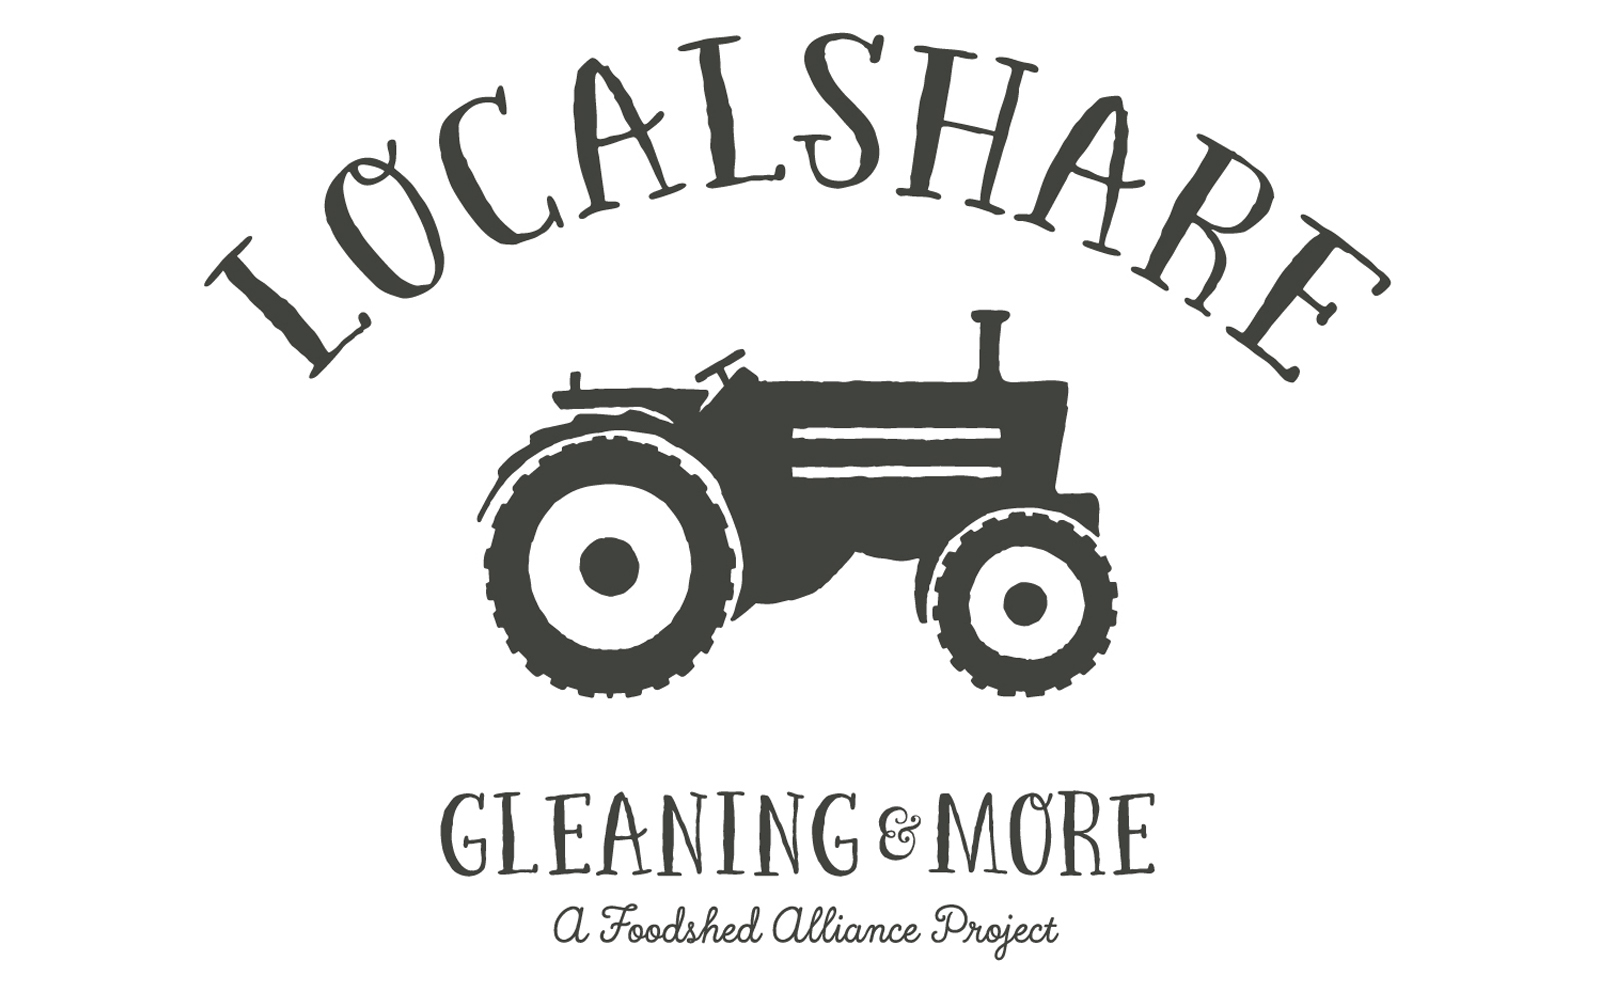 """The mission of the Foodshed Alliance's  LocalShare  program is to connect people in need to locally grown, natural foods. By involving the volunteer efforts of everyone in our community, we glean foods from local fields, turning what farmers could not harvest into nutrition for our neighbors who need it most.The program encompasses growing healthy organic food, rescuing and using what cannot be sold at market, getting it to people in need, teaching them how to cook and preserve it and creating community through """"Pay-What-You-Can"""" dinners."""